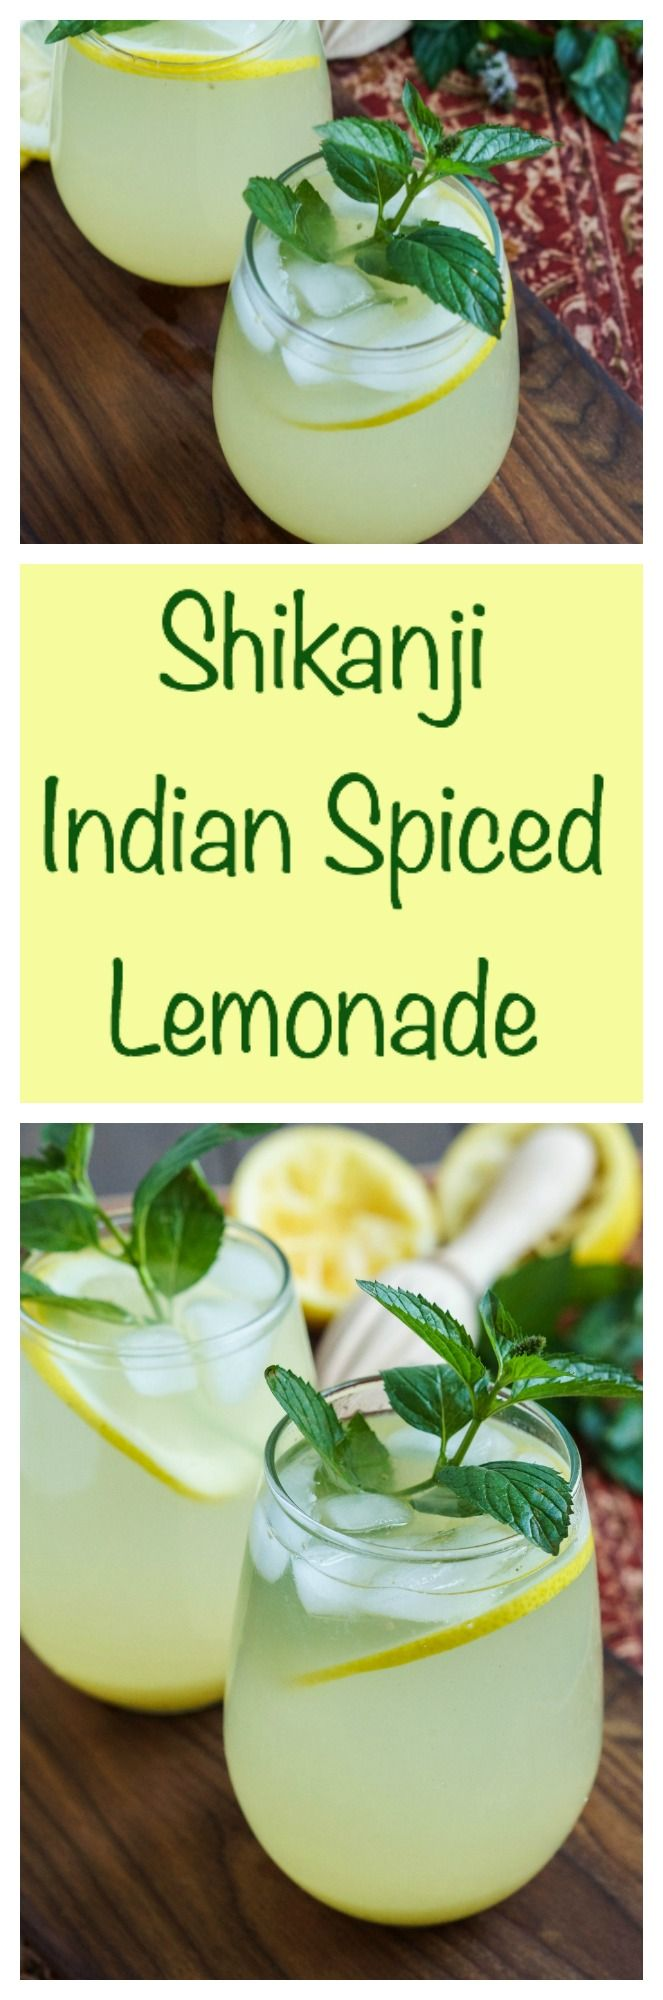 Shikanji (Indian Spiced Lemonade)